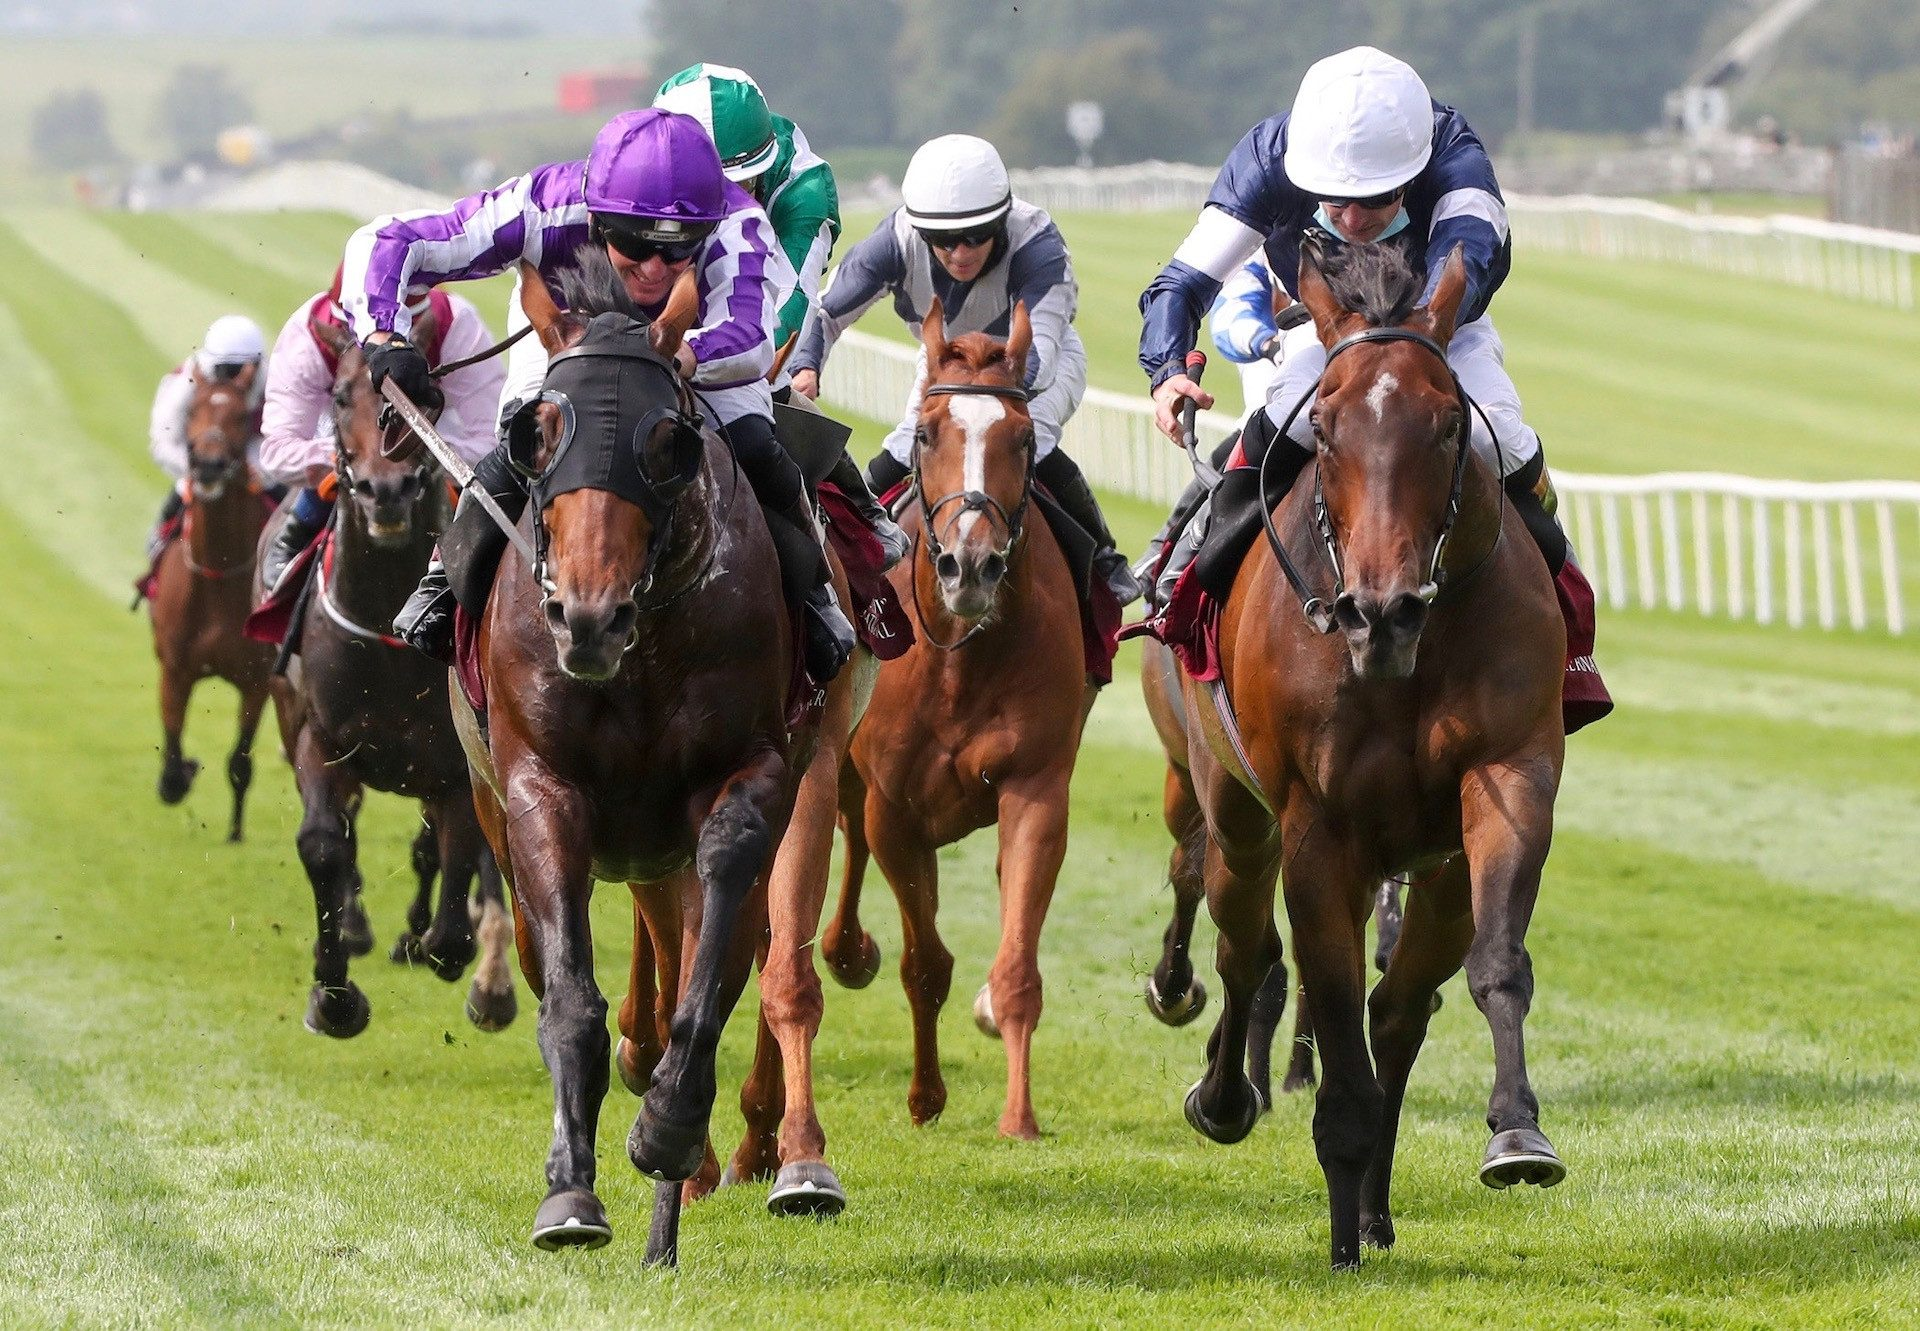 Delphi (Galileo) Wins The Gr.3 Irish St Leger Trial at the Curragh